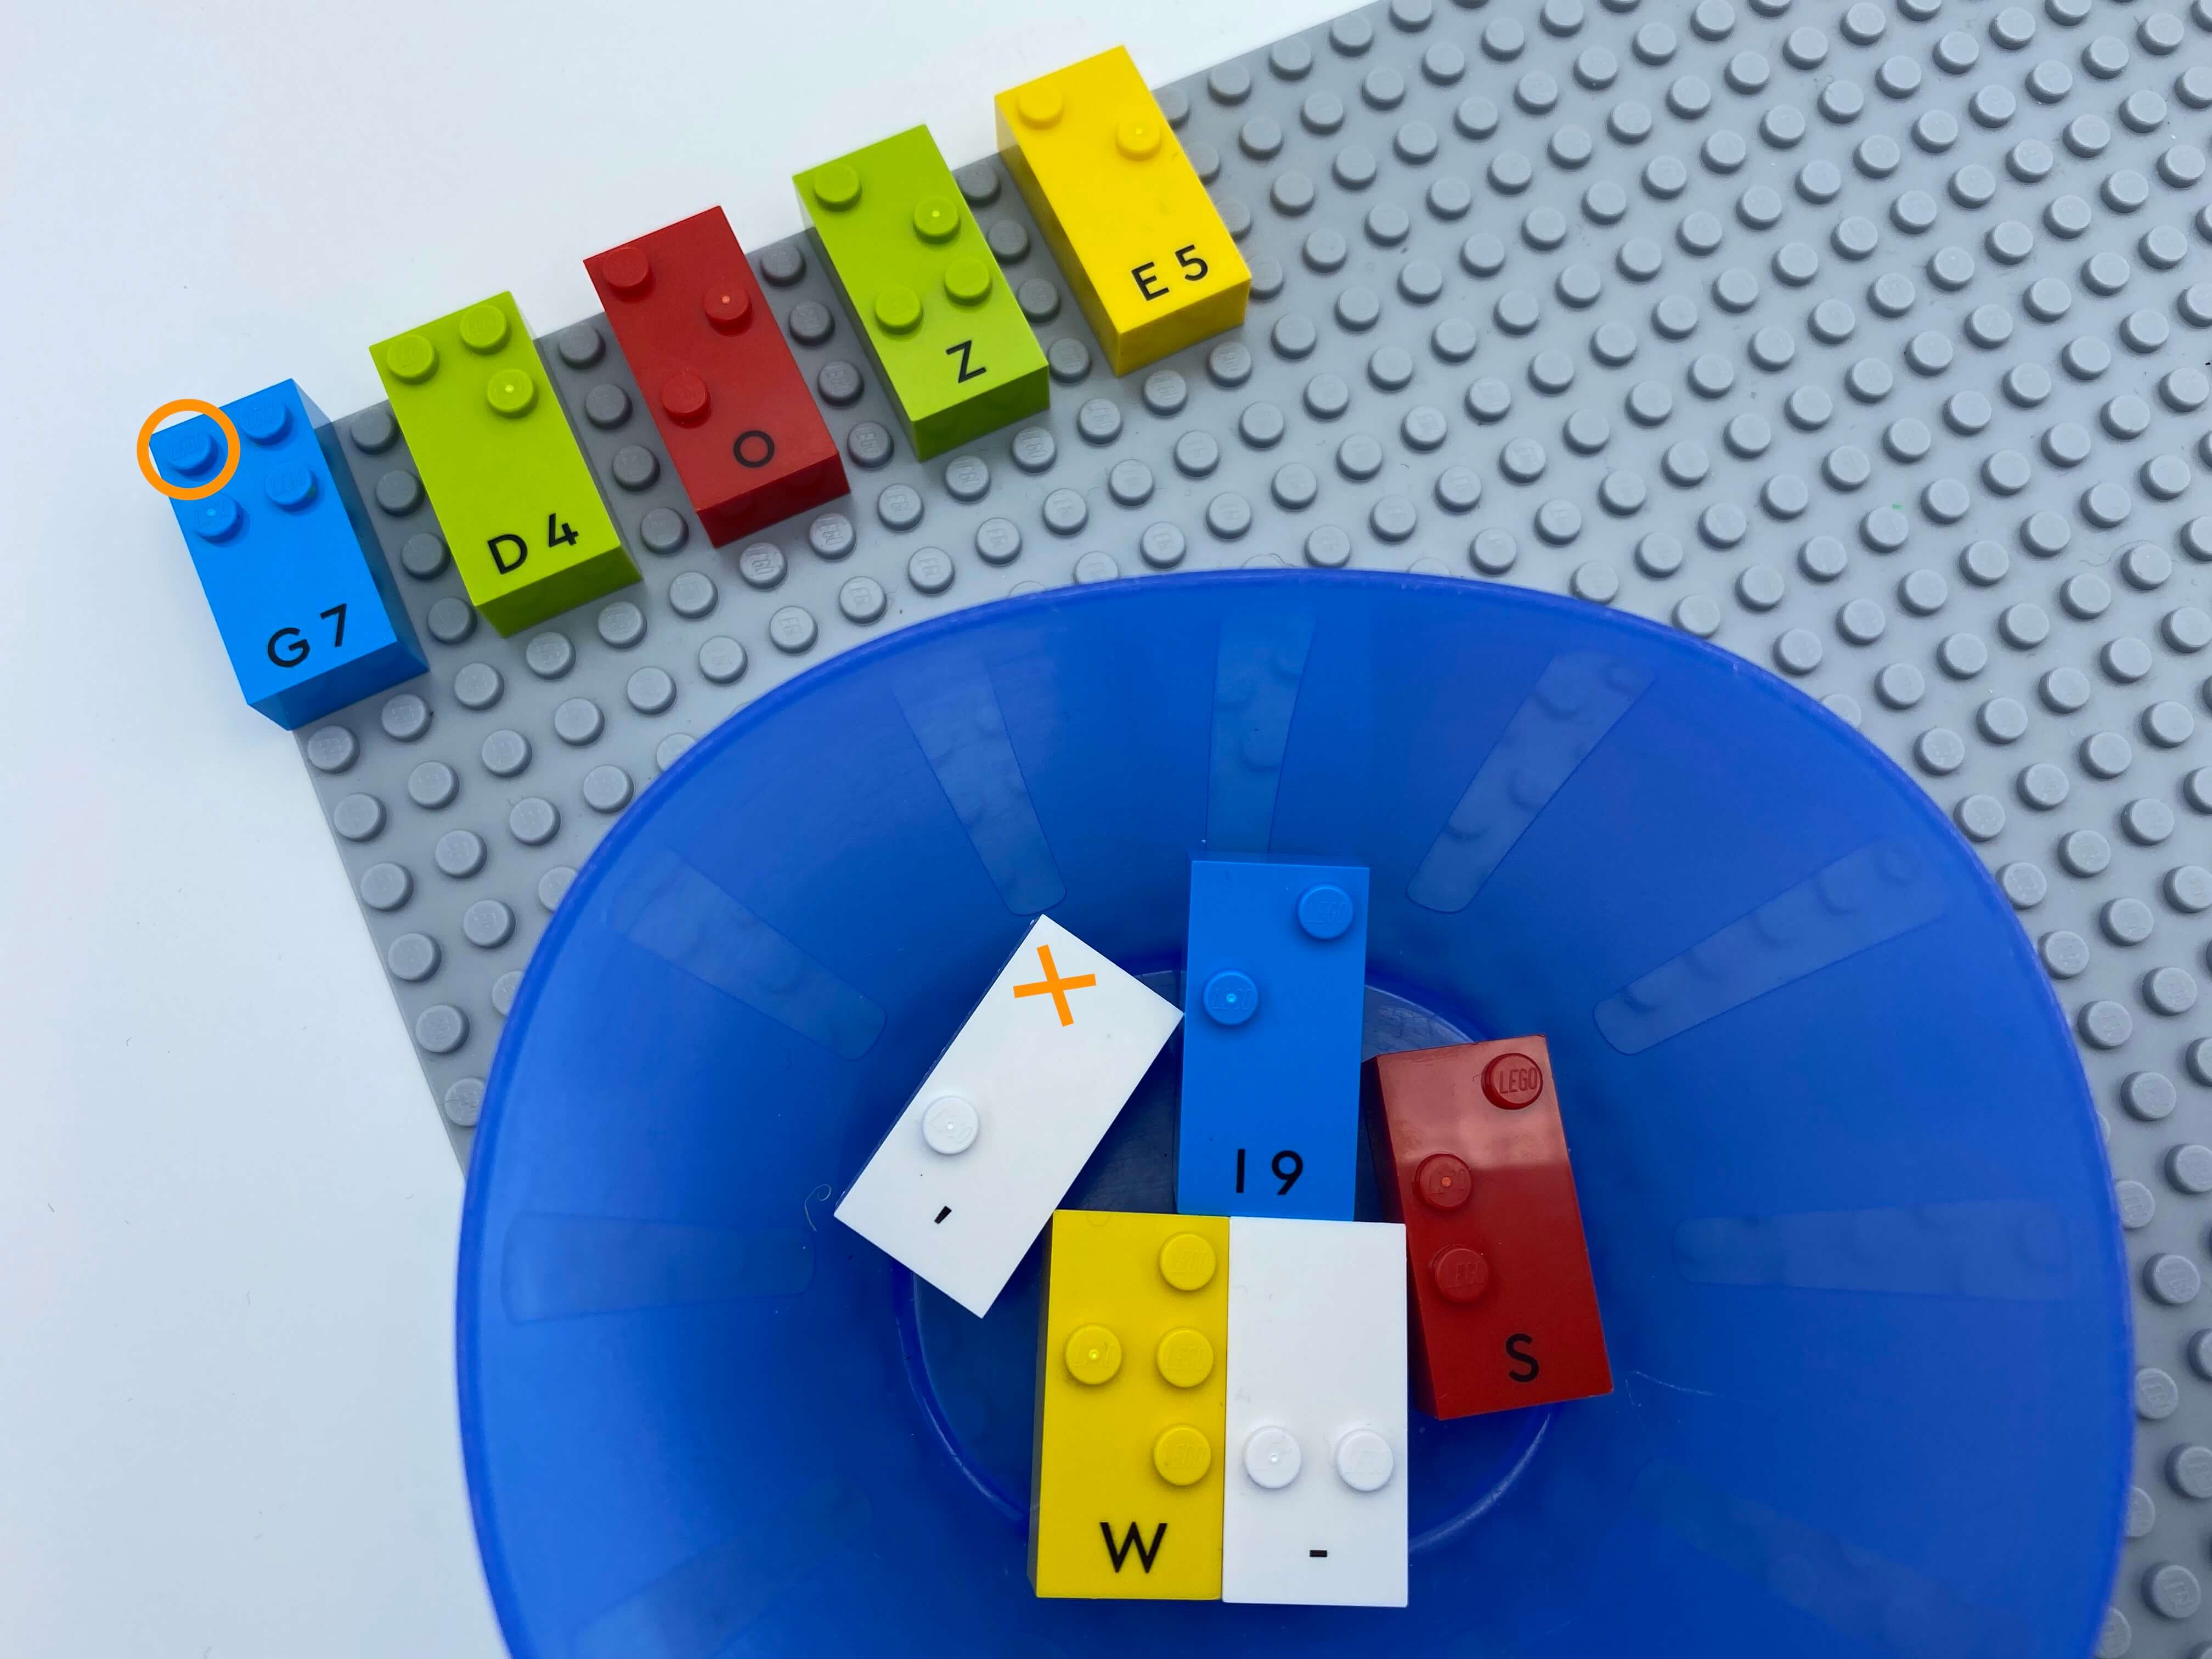 5 letter bricks with dit 1 on the base plate (letter g, d, o, z, e), 5 letter bricks without dot 1 in the bowl (letter w, s, I, comma and dash).